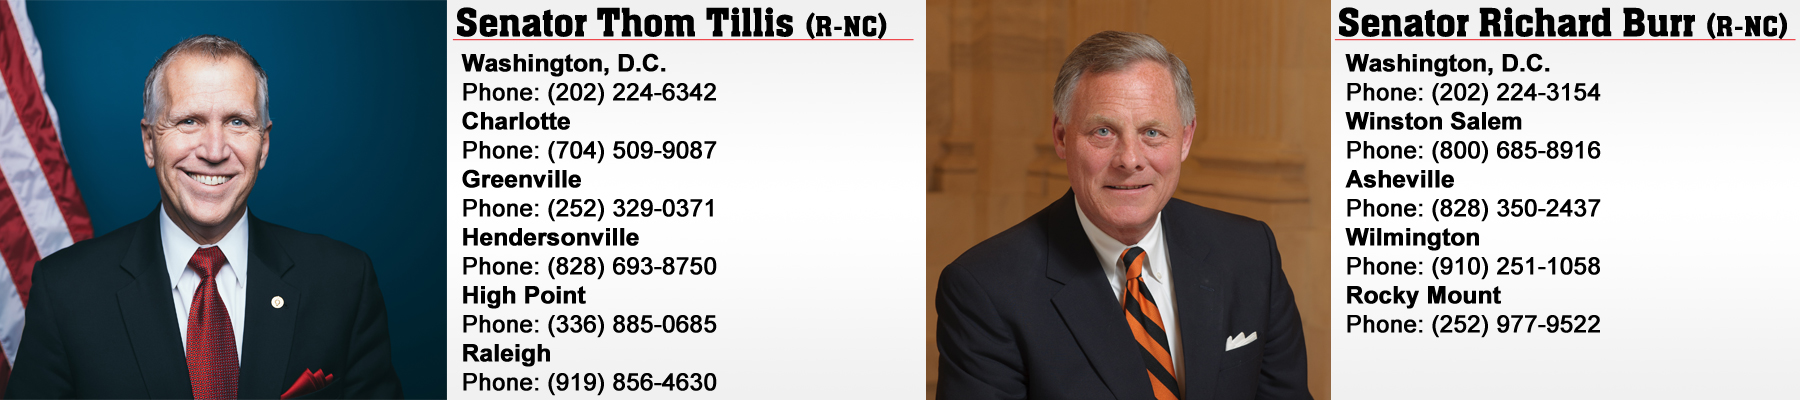 Senators Tillis and Burr Contact Information